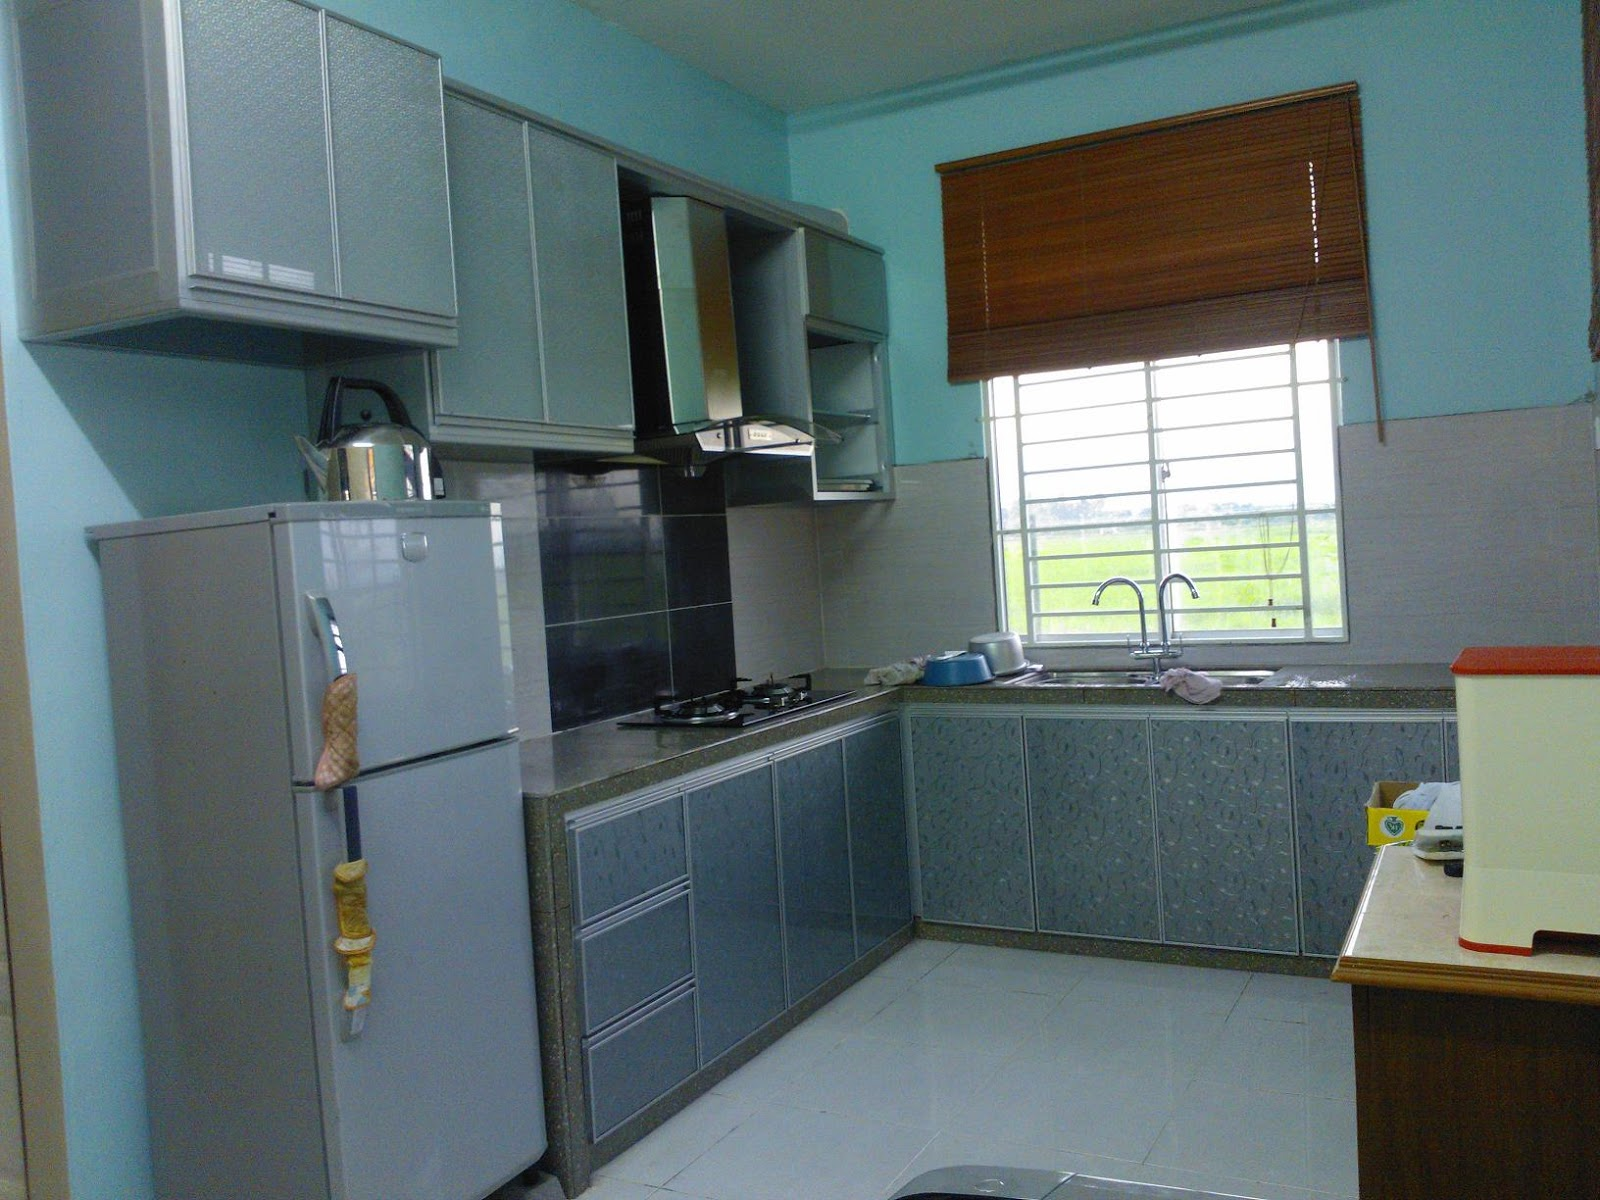 Kabinet Dapur Kecil 2014 Ask Home Design